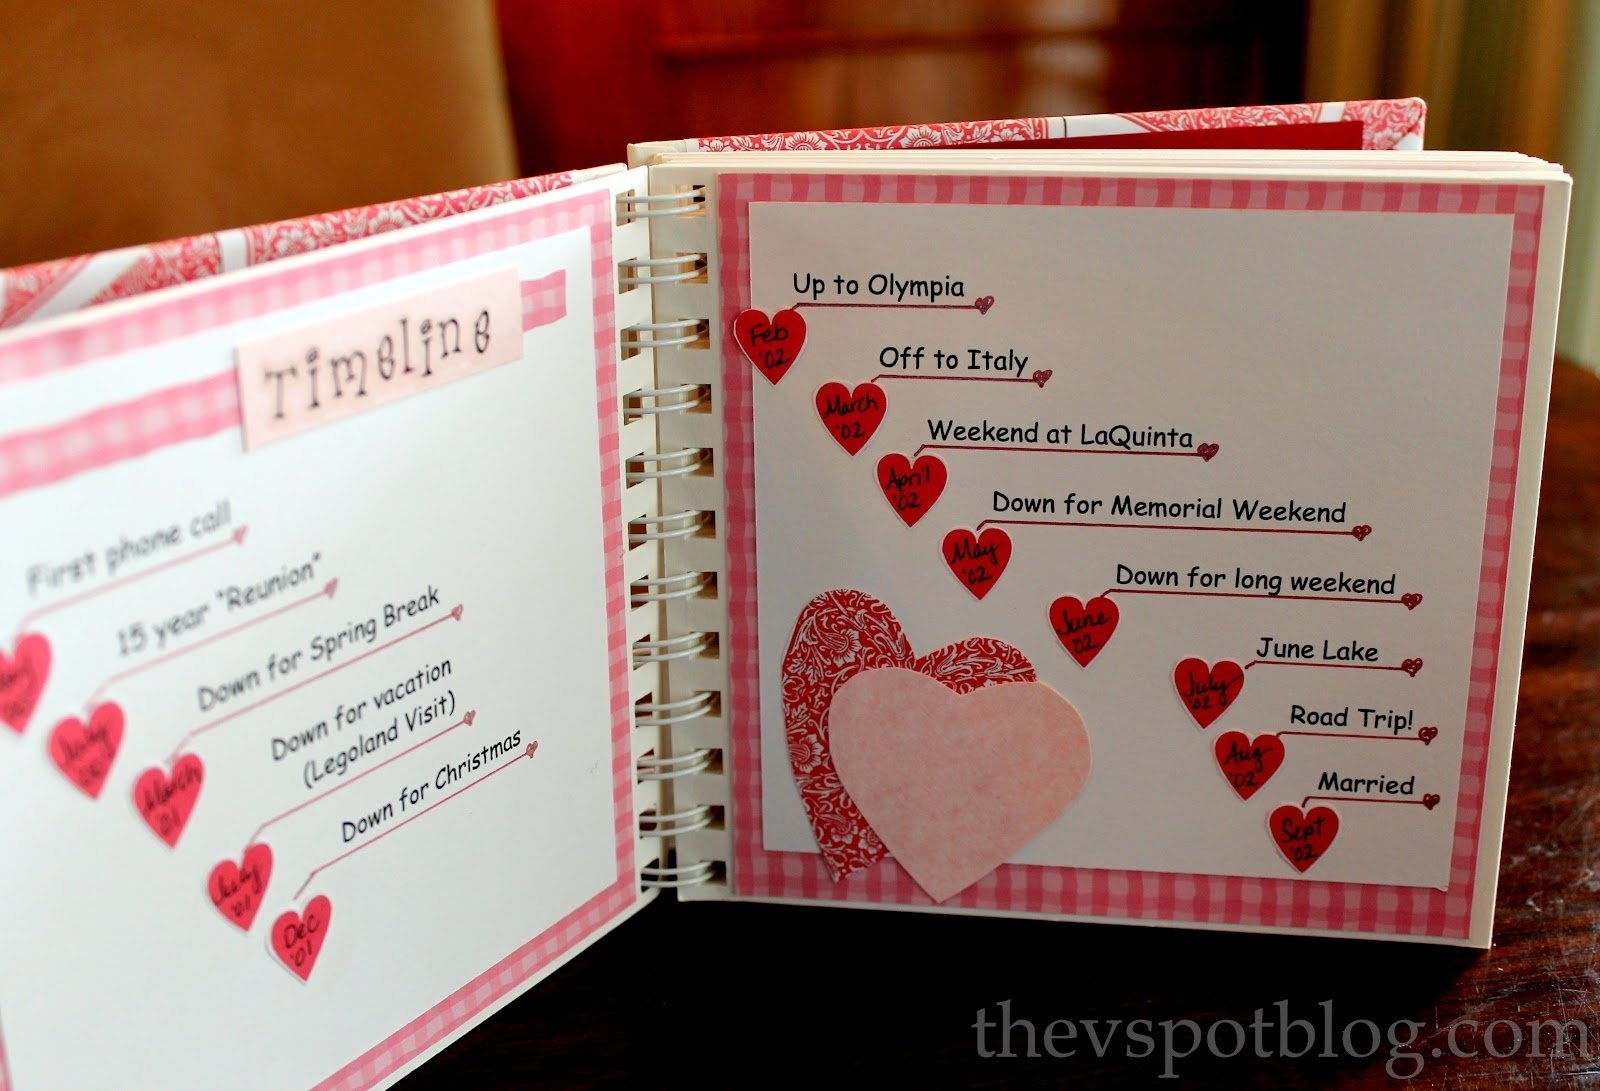 10 Elegant Sweet Valentines Day Ideas For Him valentines day ideas for him romantic valentines day ideas for him 2020